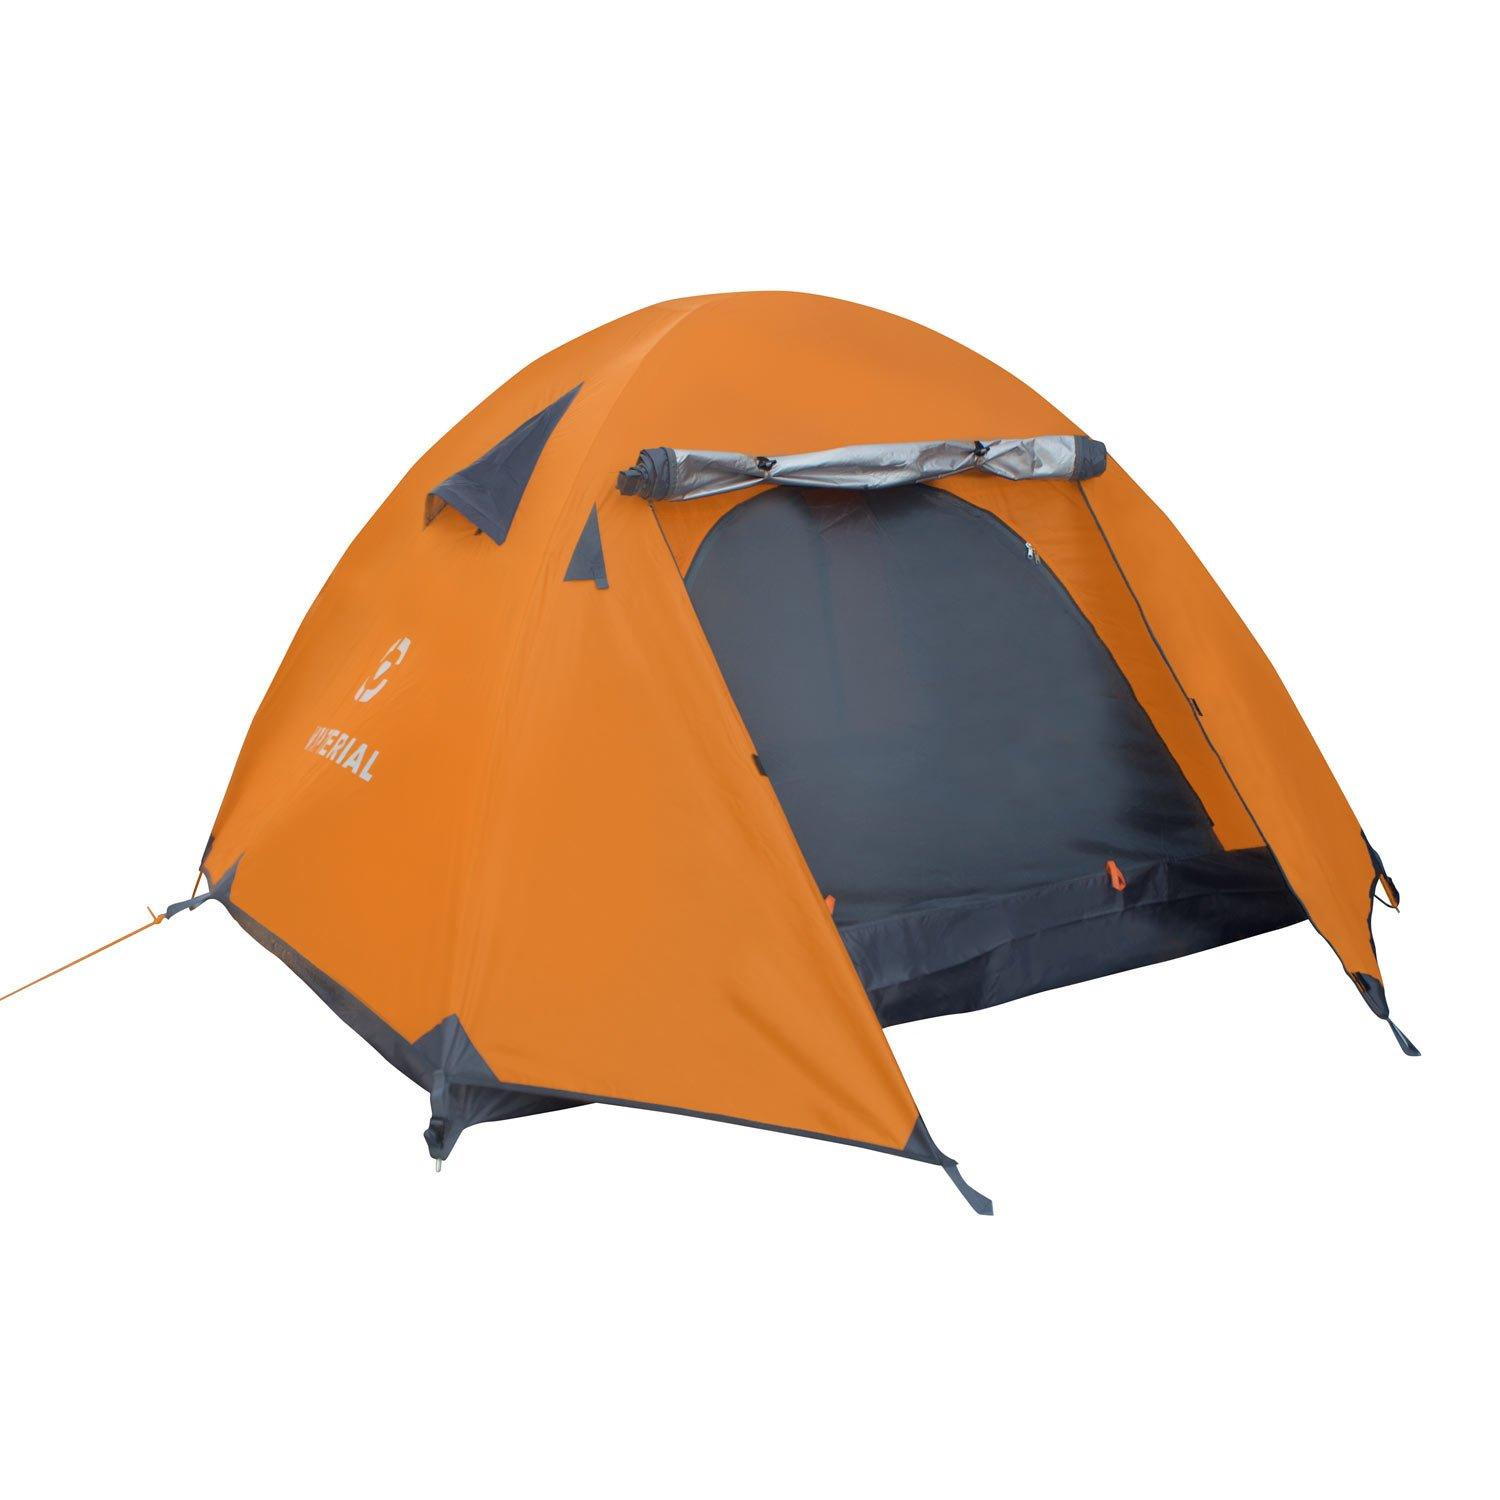 Winterial 3 Person Camping Tents